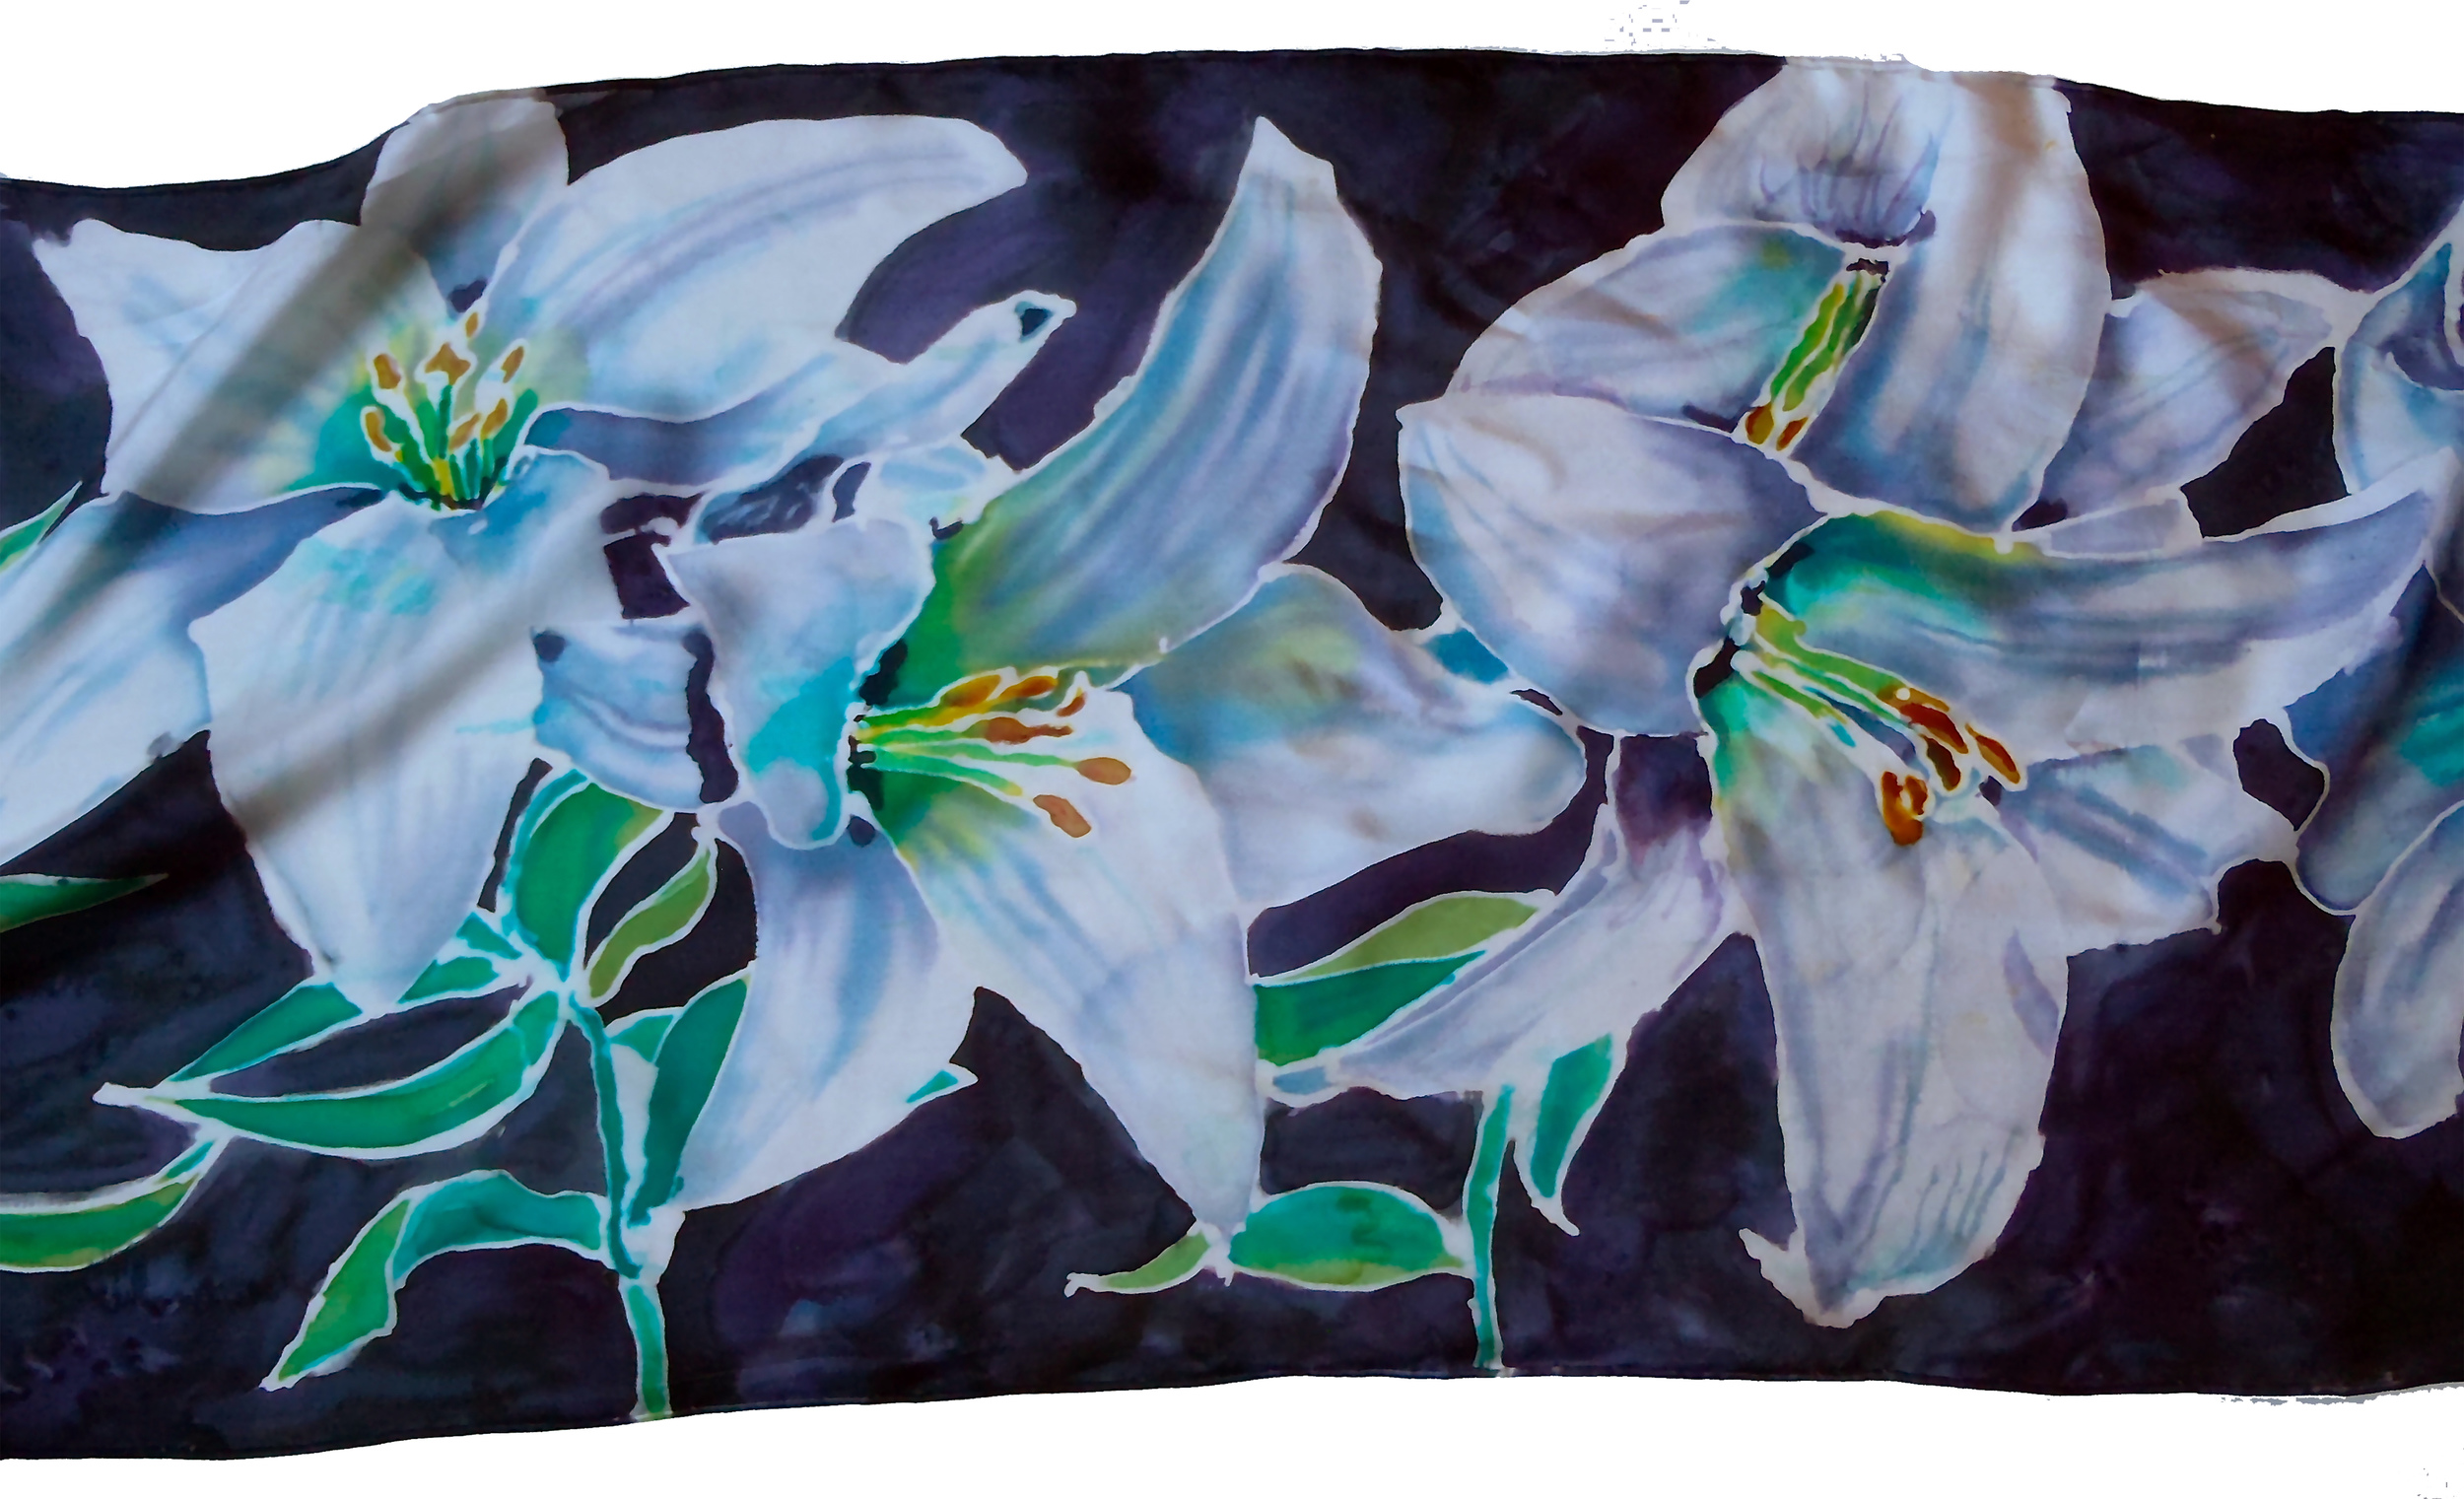 lillies_detail.jpg